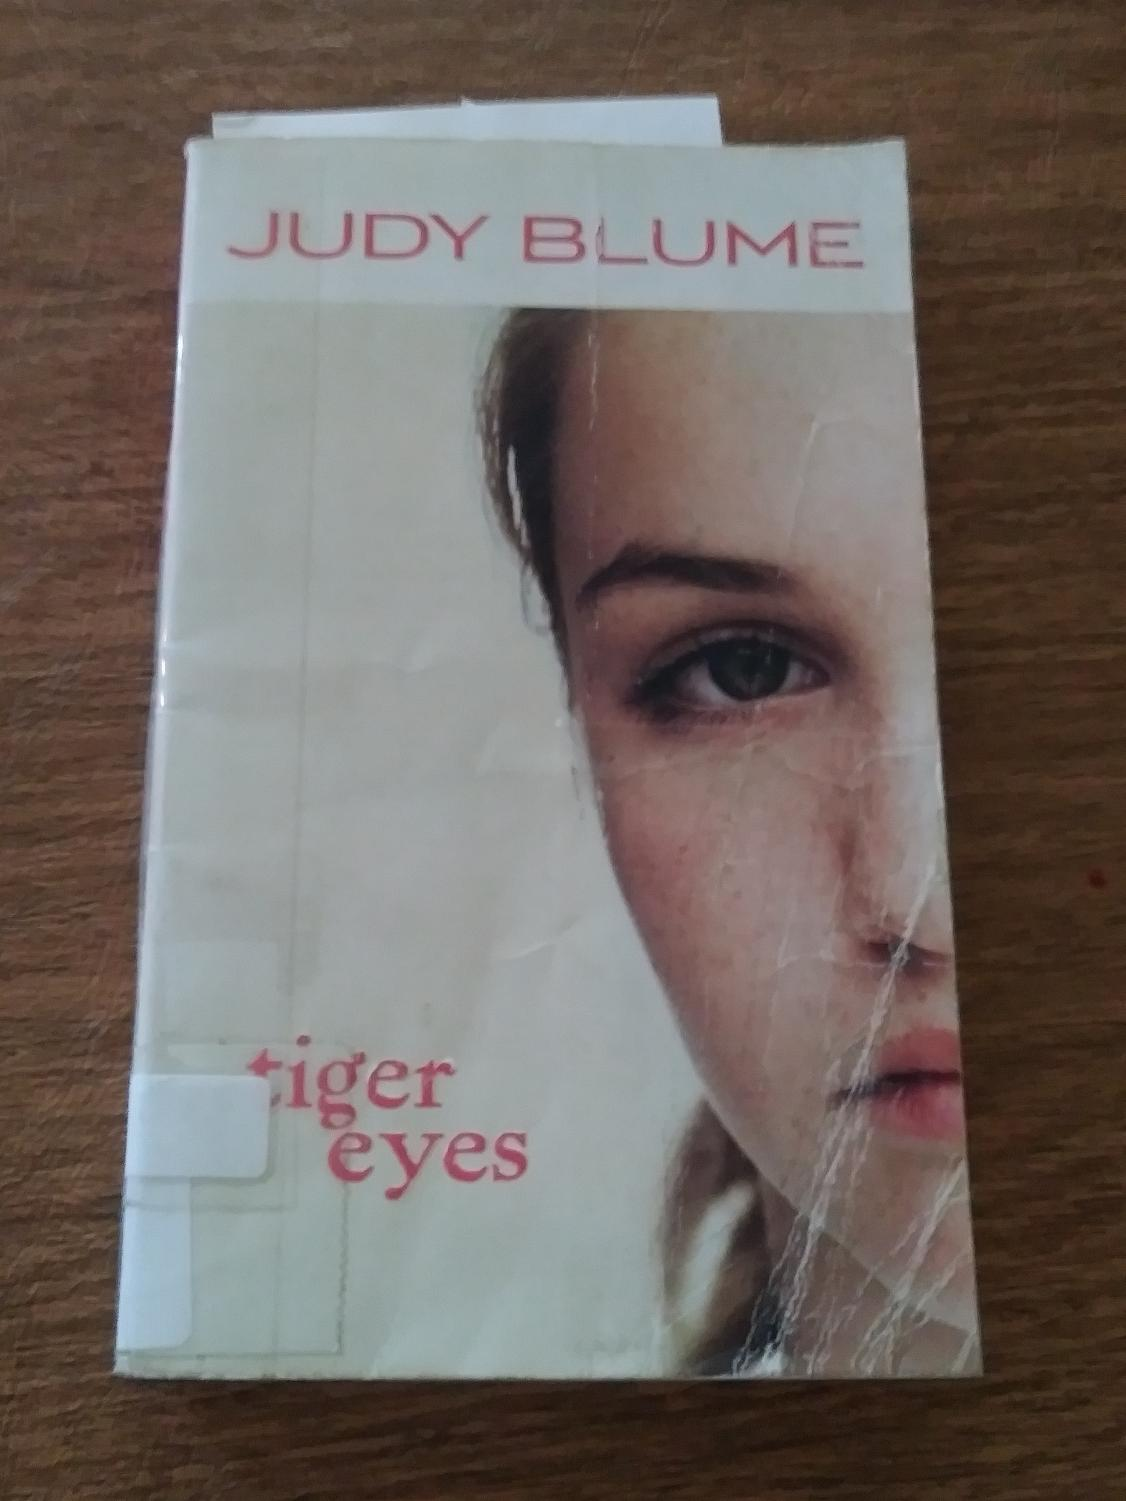 A thrilling read, Tiger Eyes  is a major hit being one of Judy Blume's best novels.